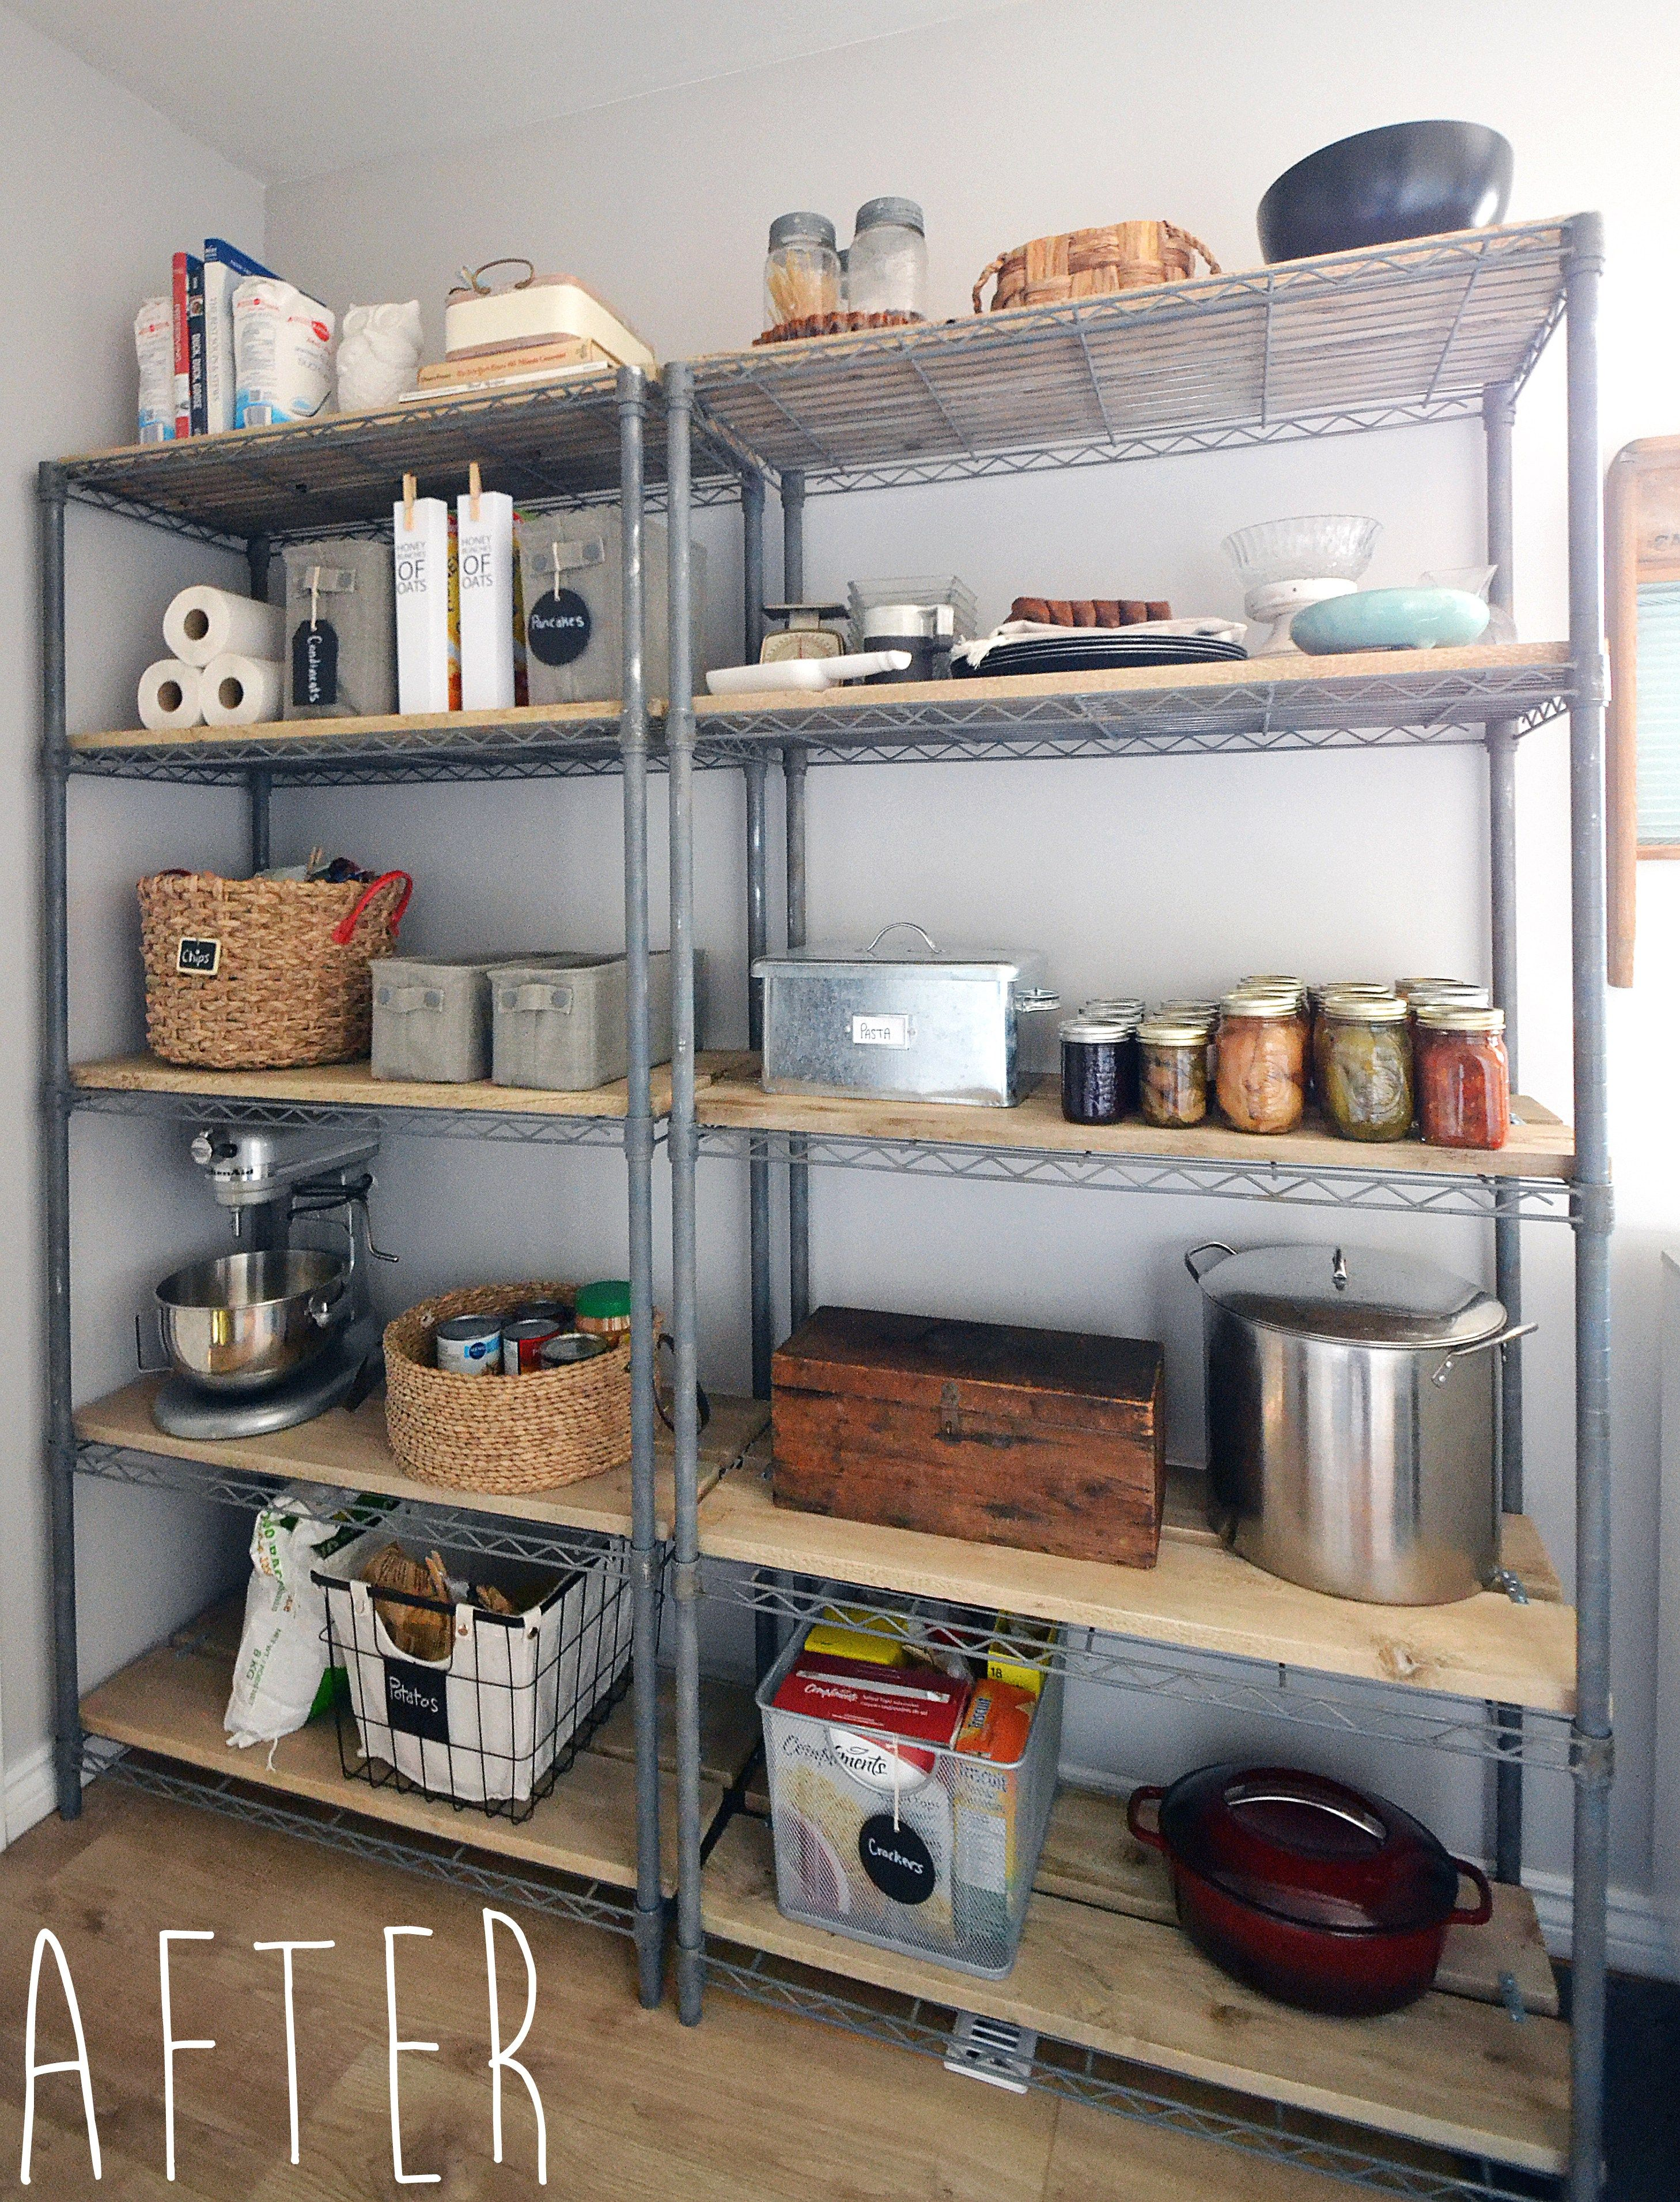 How To Give Pantry Shelving Easy Rustic Charm Pantry